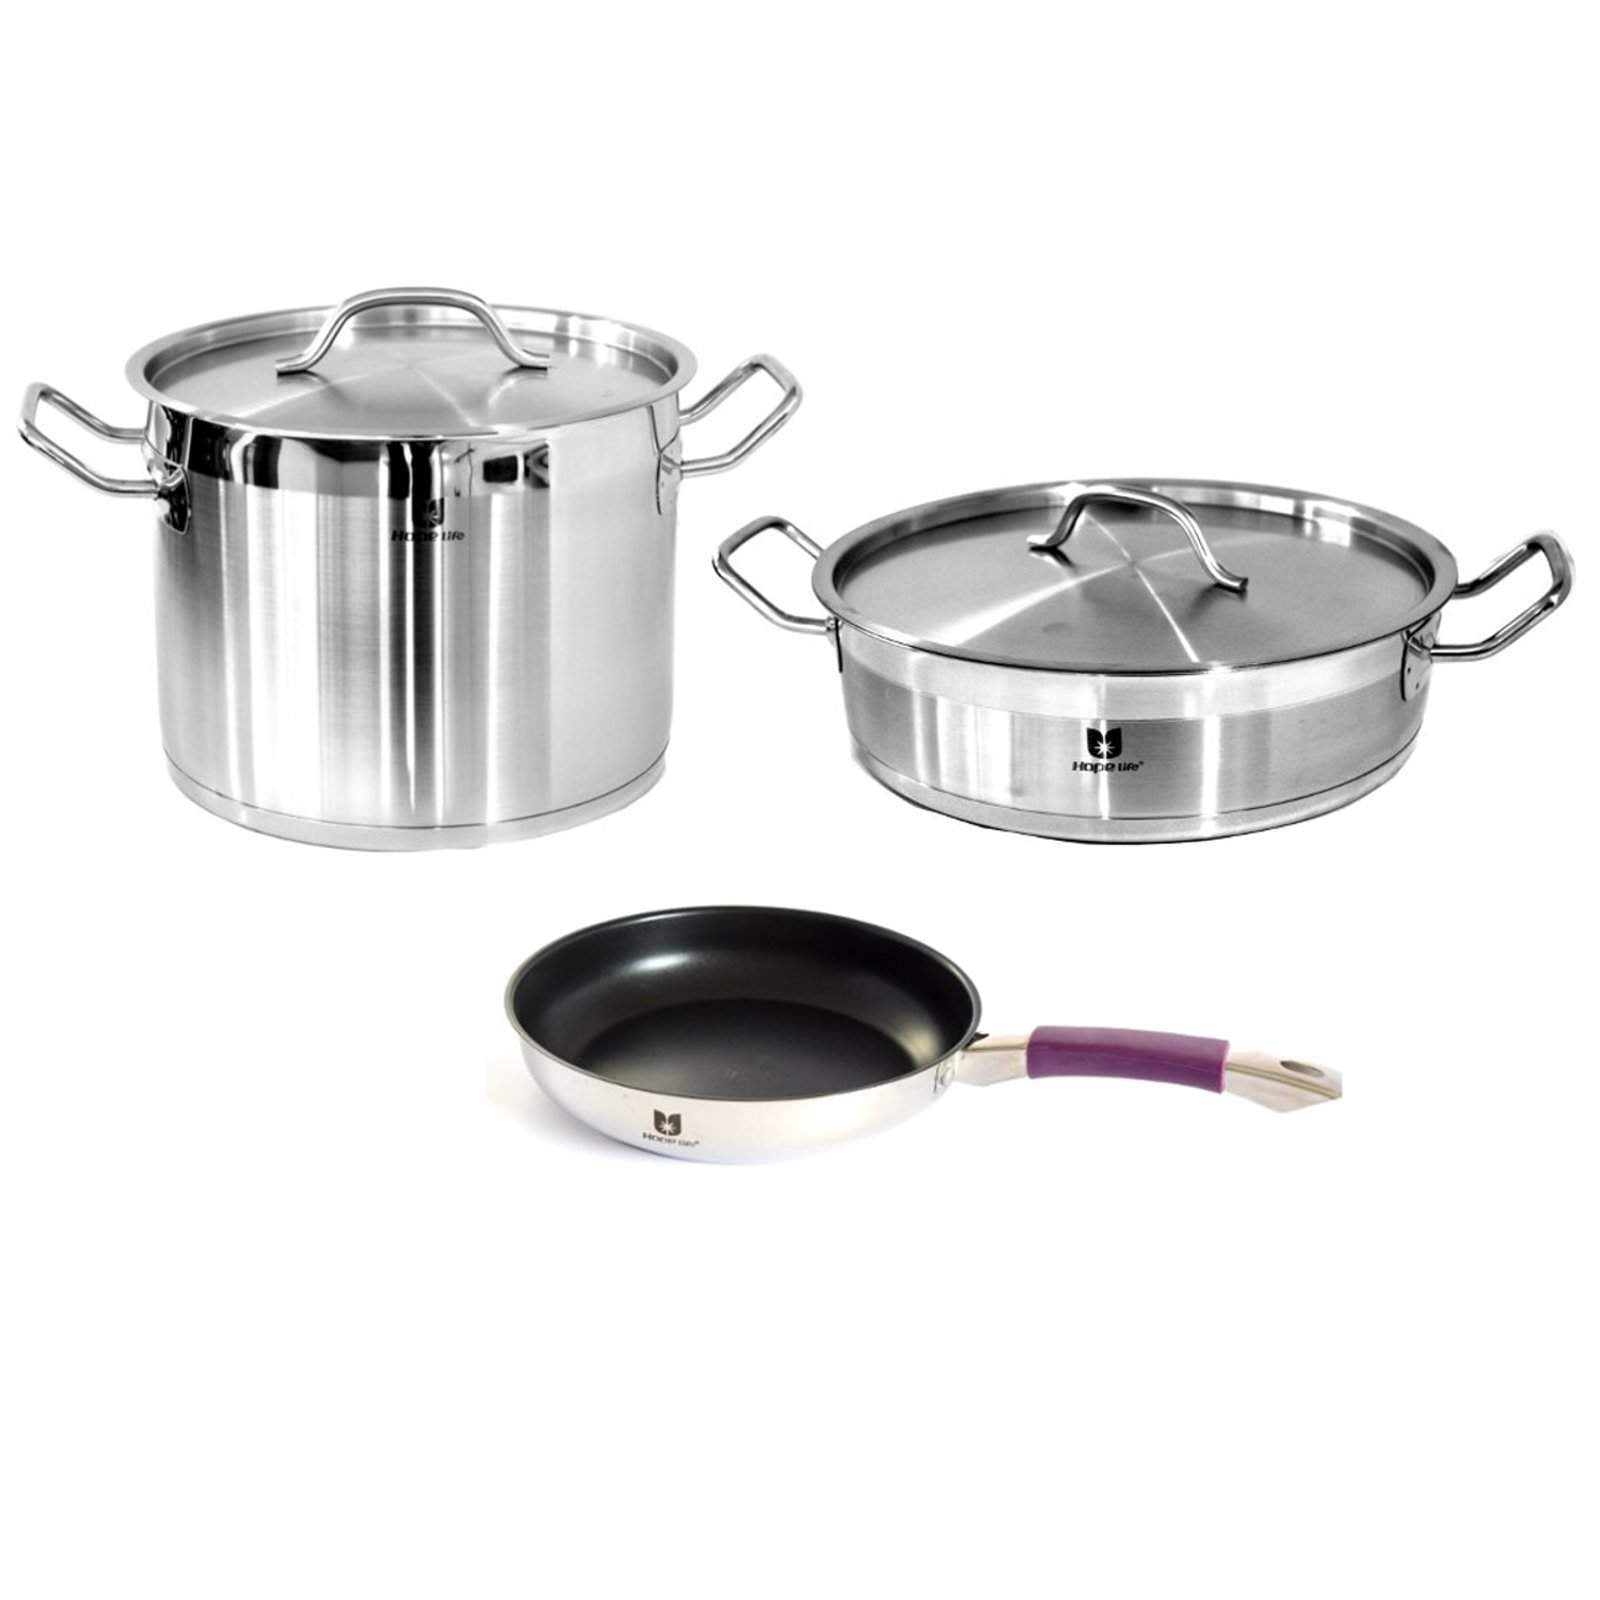 3Pcs Stainless Steel Cookware Set-Stainless Steel Cookware Set-Chef's Quality Cookware